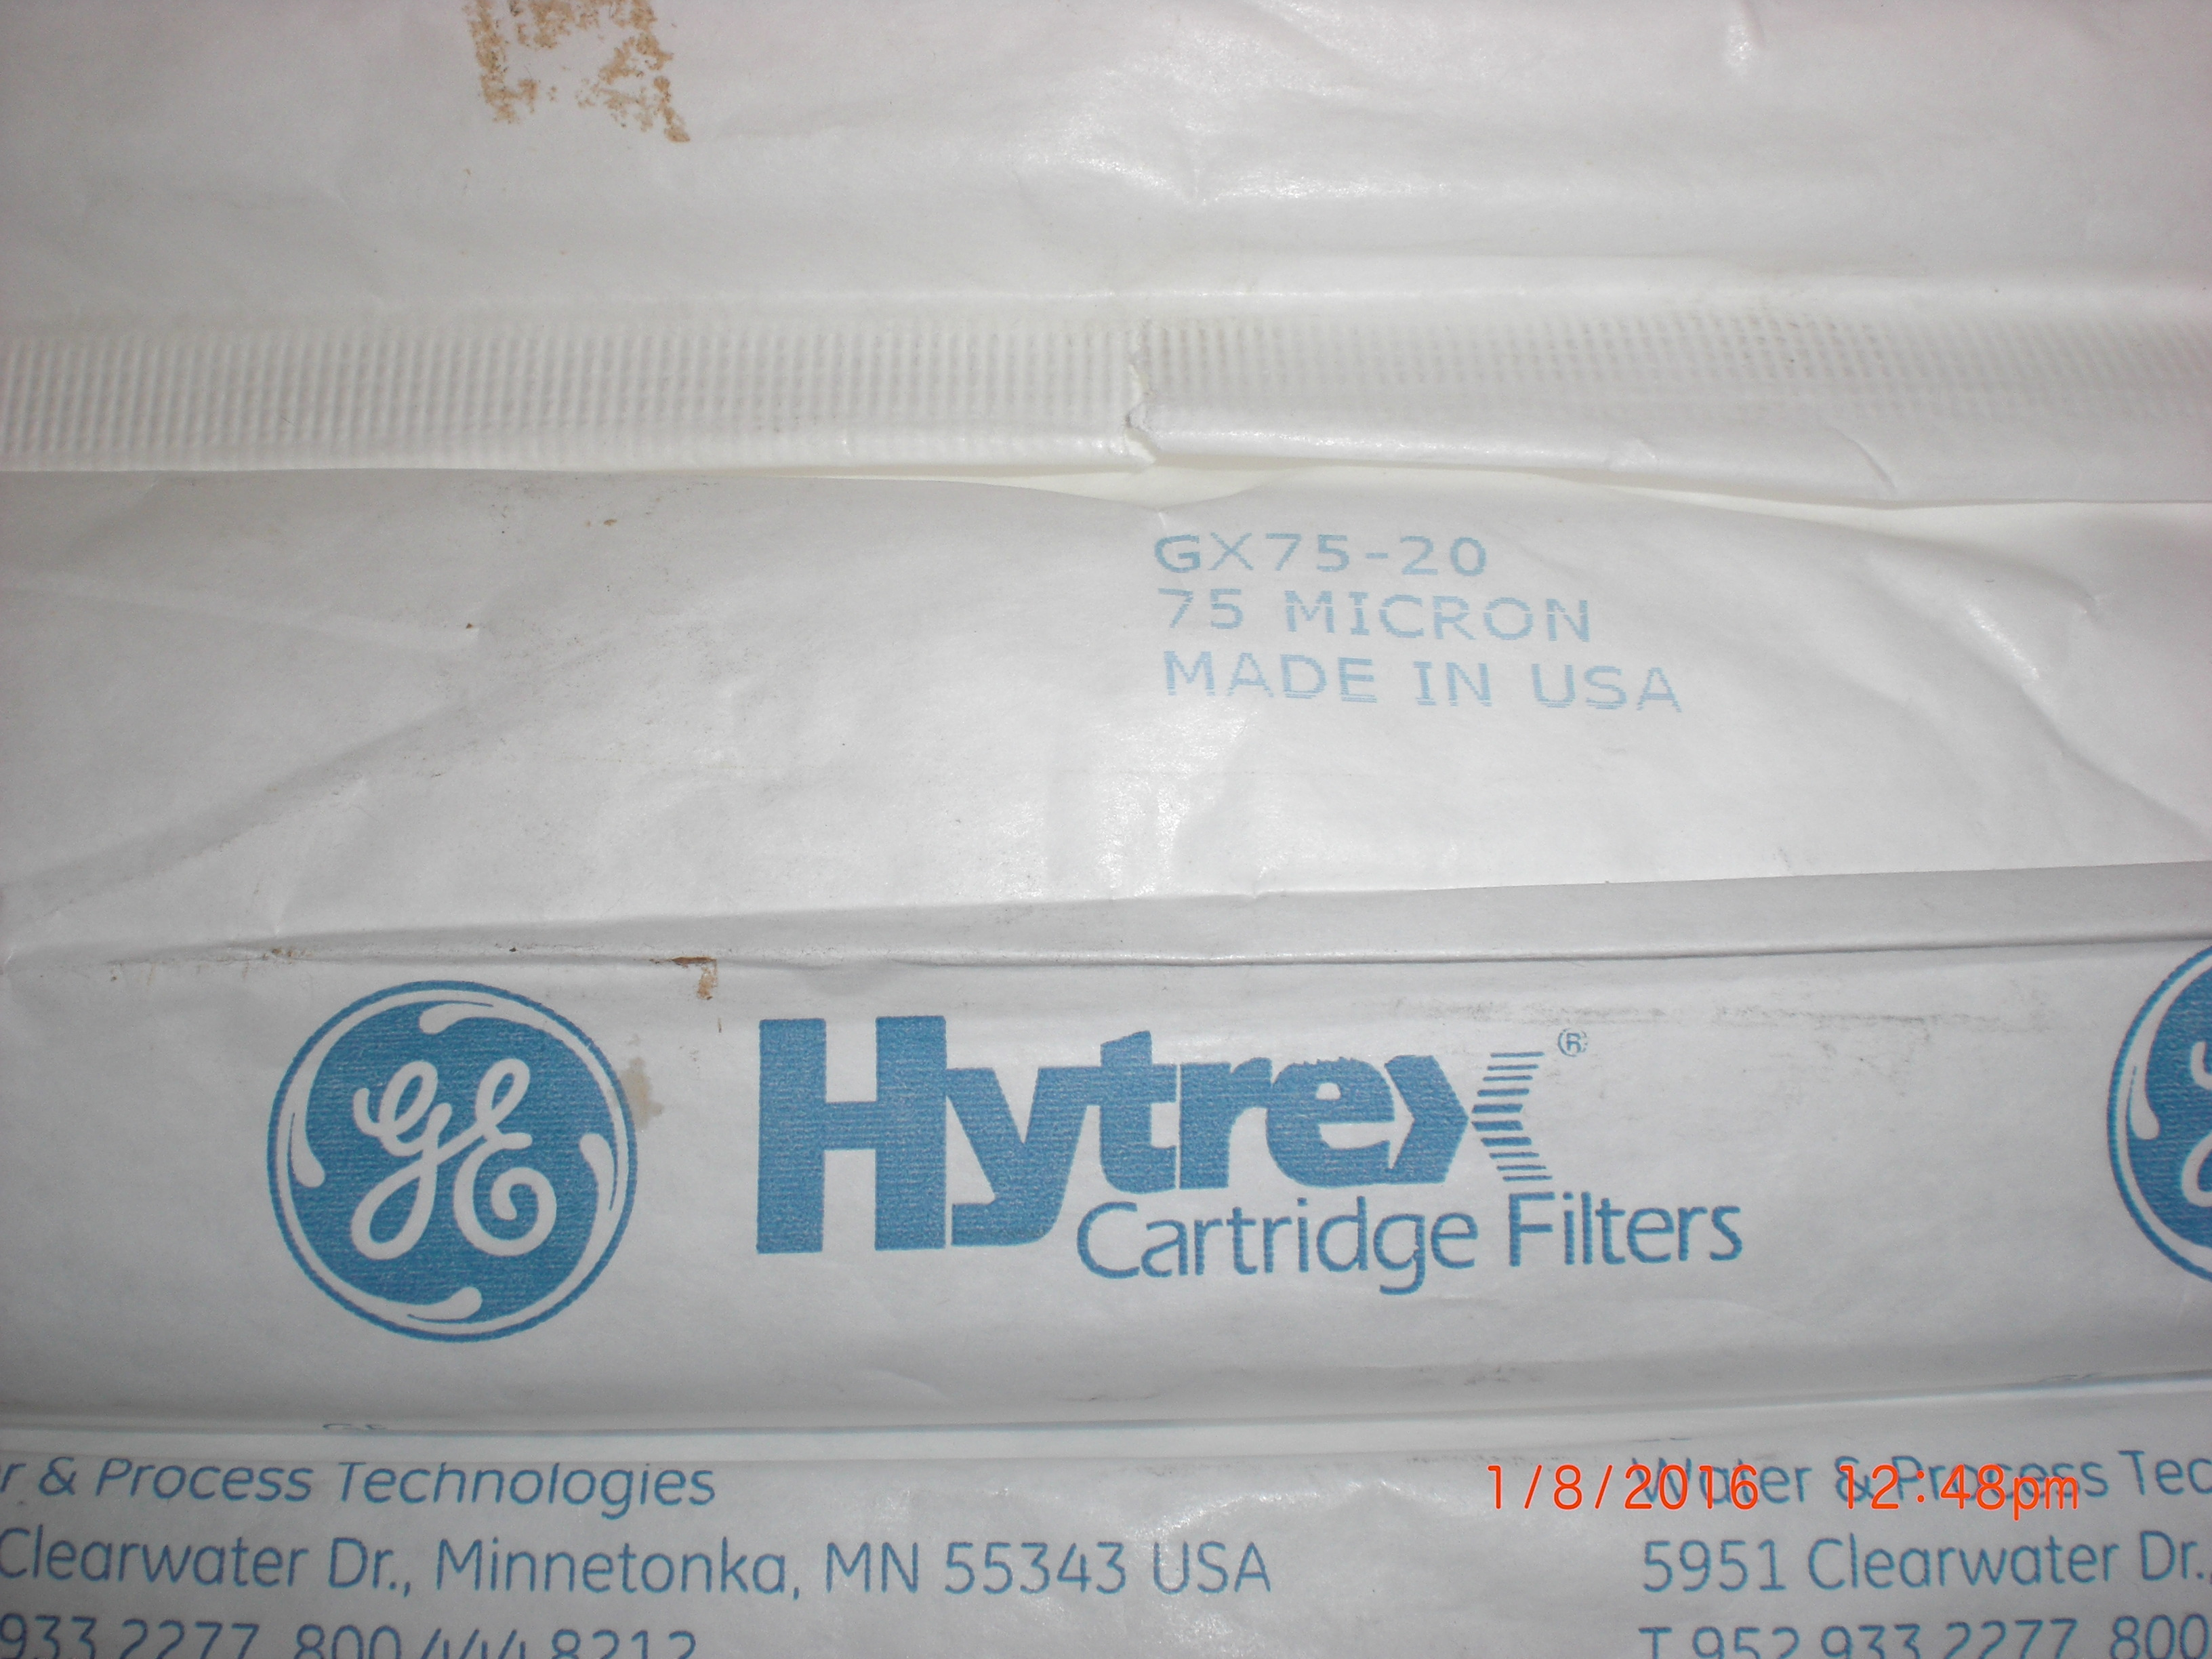 Filter  Hytrex 20in 75 micron PKG 5 GE GX75-20  Edwards Y11201007